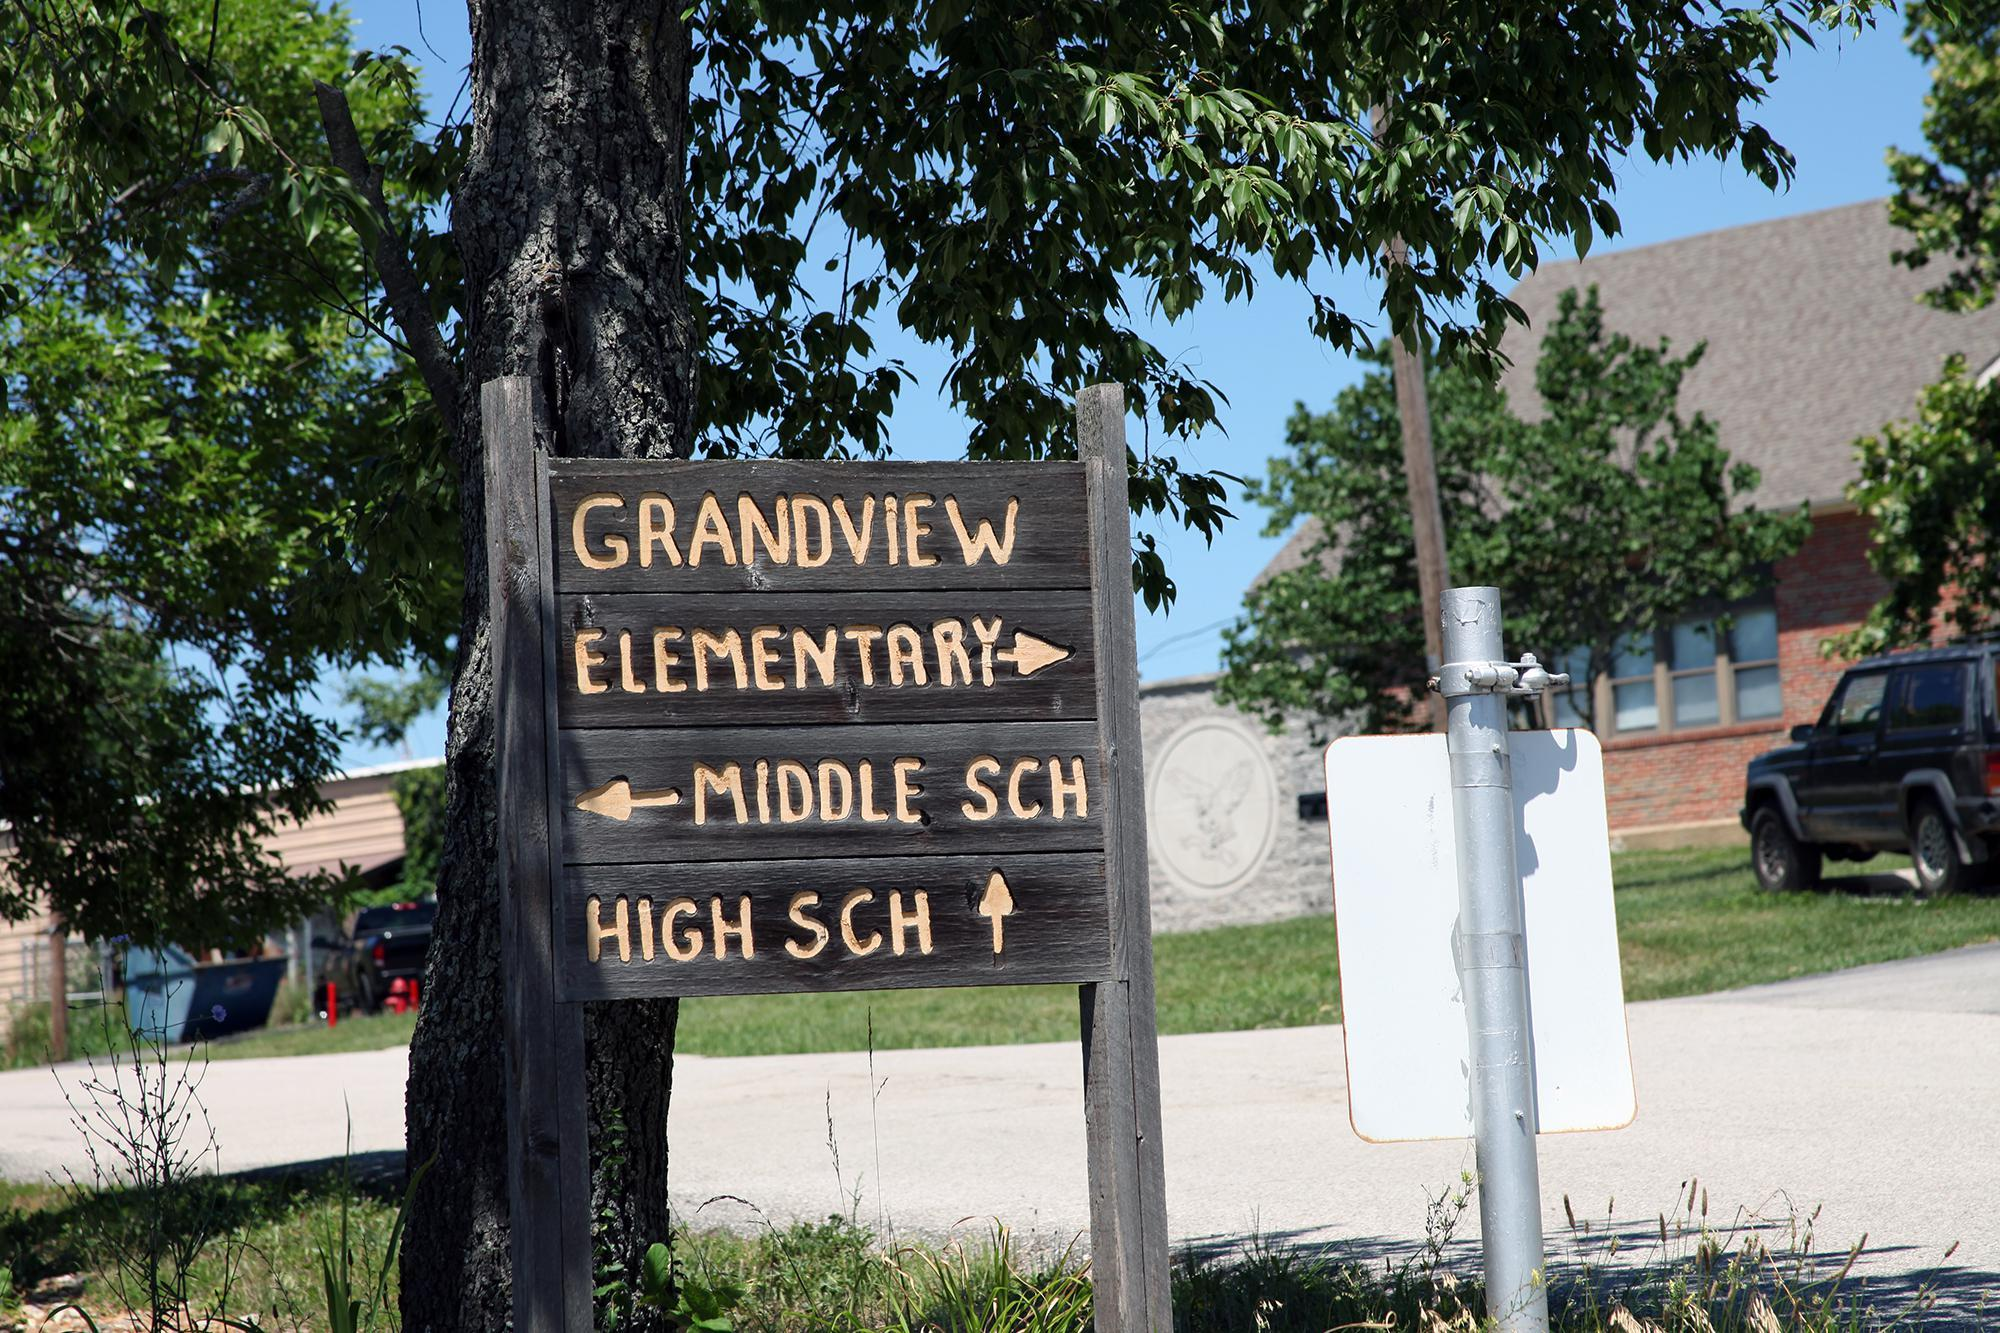 Illinois jefferson county ina - Grandview Elementary Middle And High Schools Occupy The Same Campus In A Rural Area Of Jefferson County Missouri